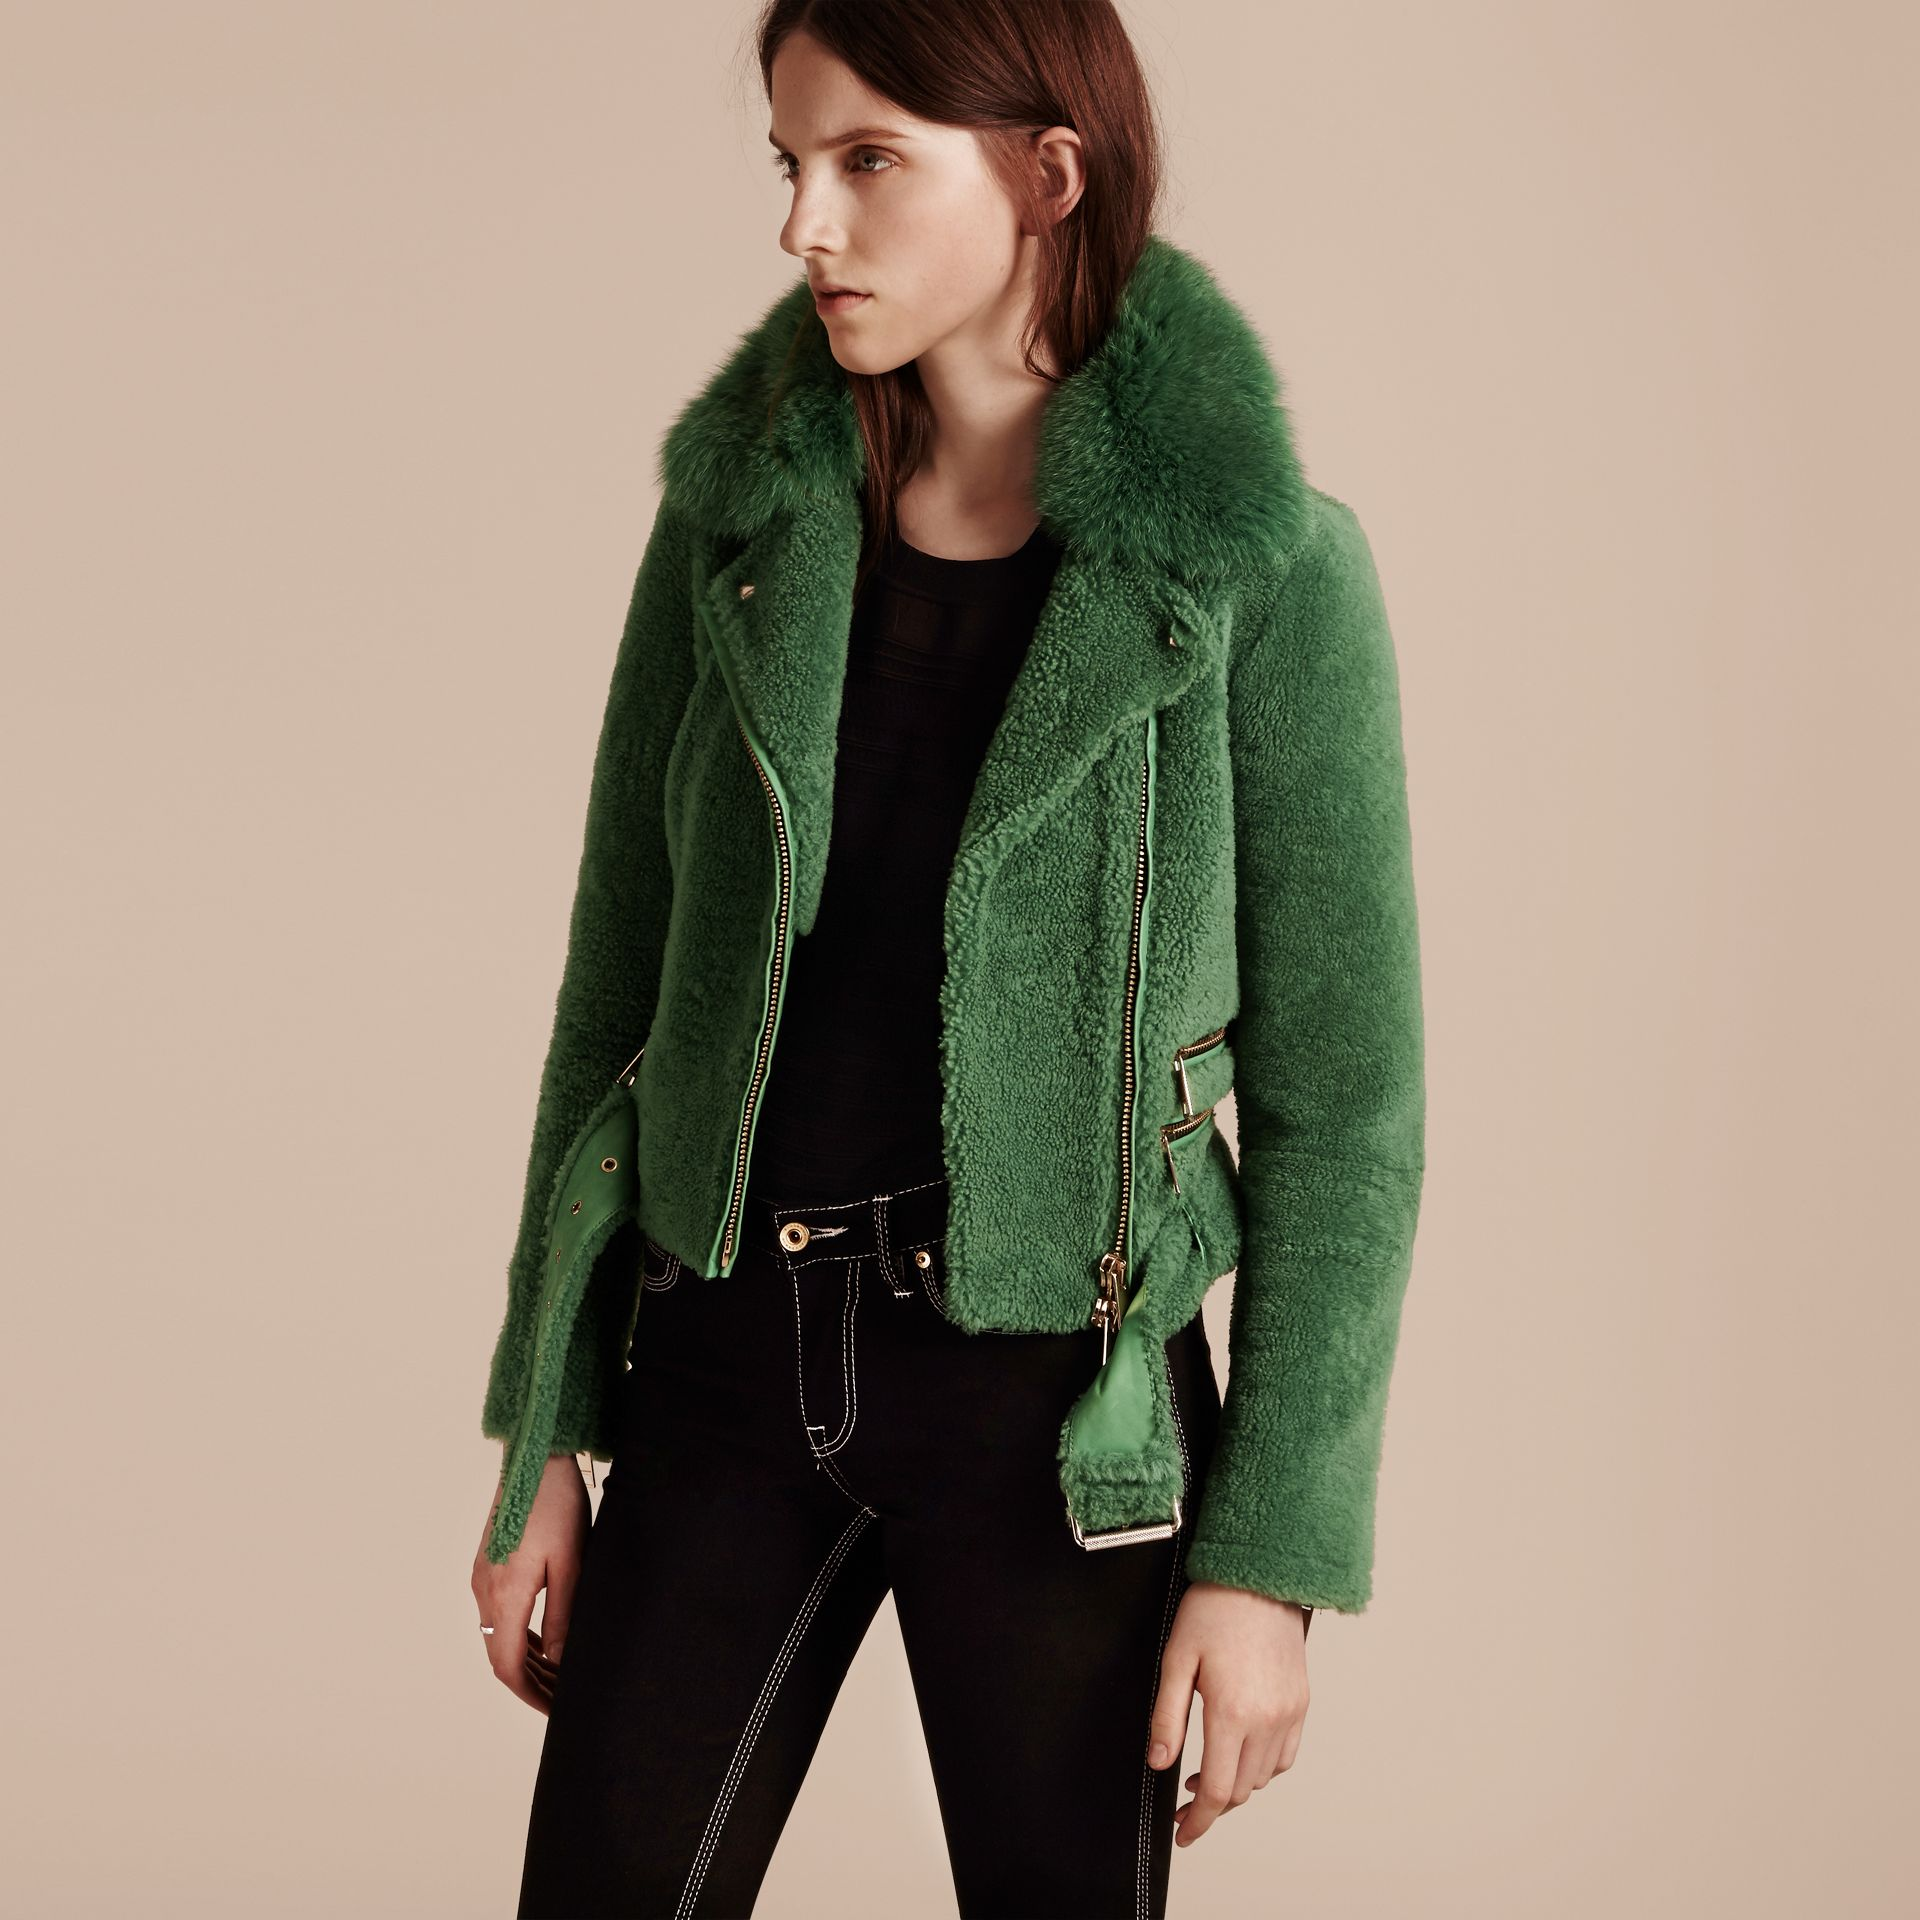 Pigment green Shearling Biker Jacket with Fur Collar Pigment Green - gallery image 7